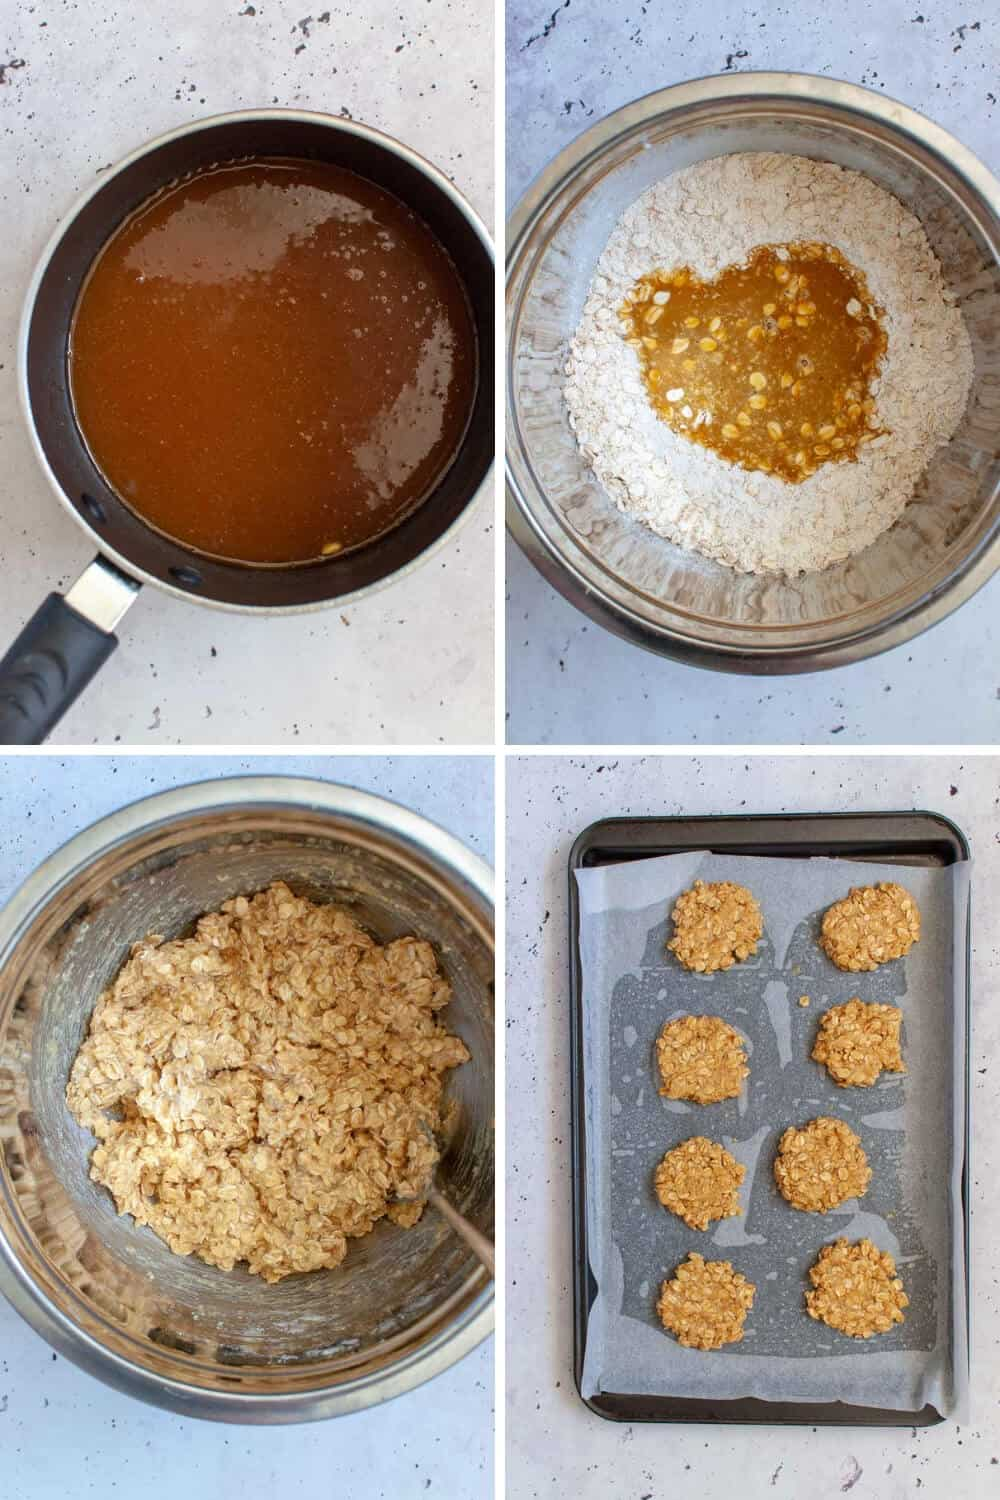 Healthy anzac biscuits preparation 2